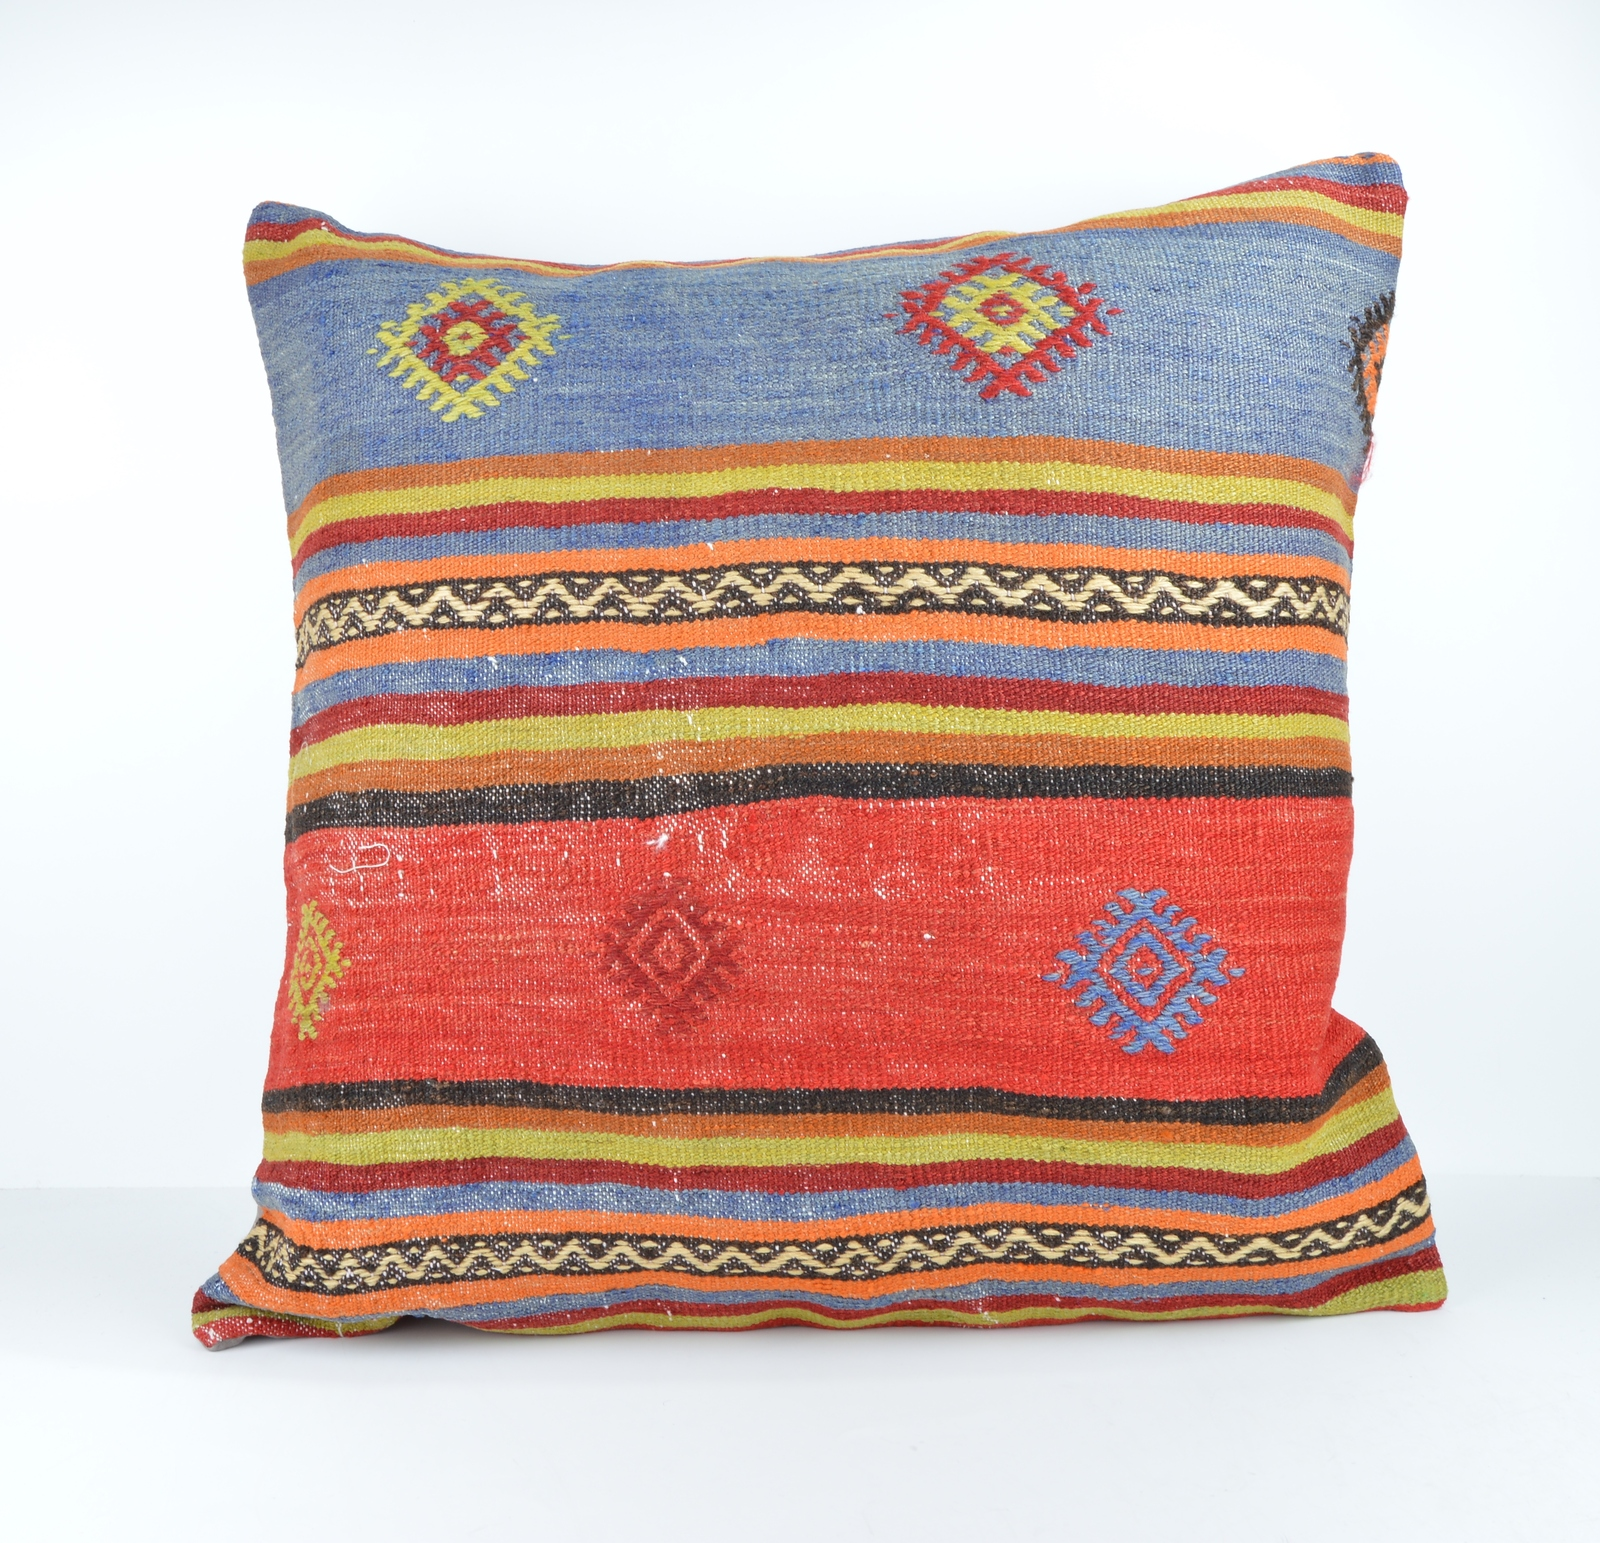 Oversized Decorative Pillow Covers : 24x24 large kilim pillow big pillow decorative pillow cover large cushion case - Pillows